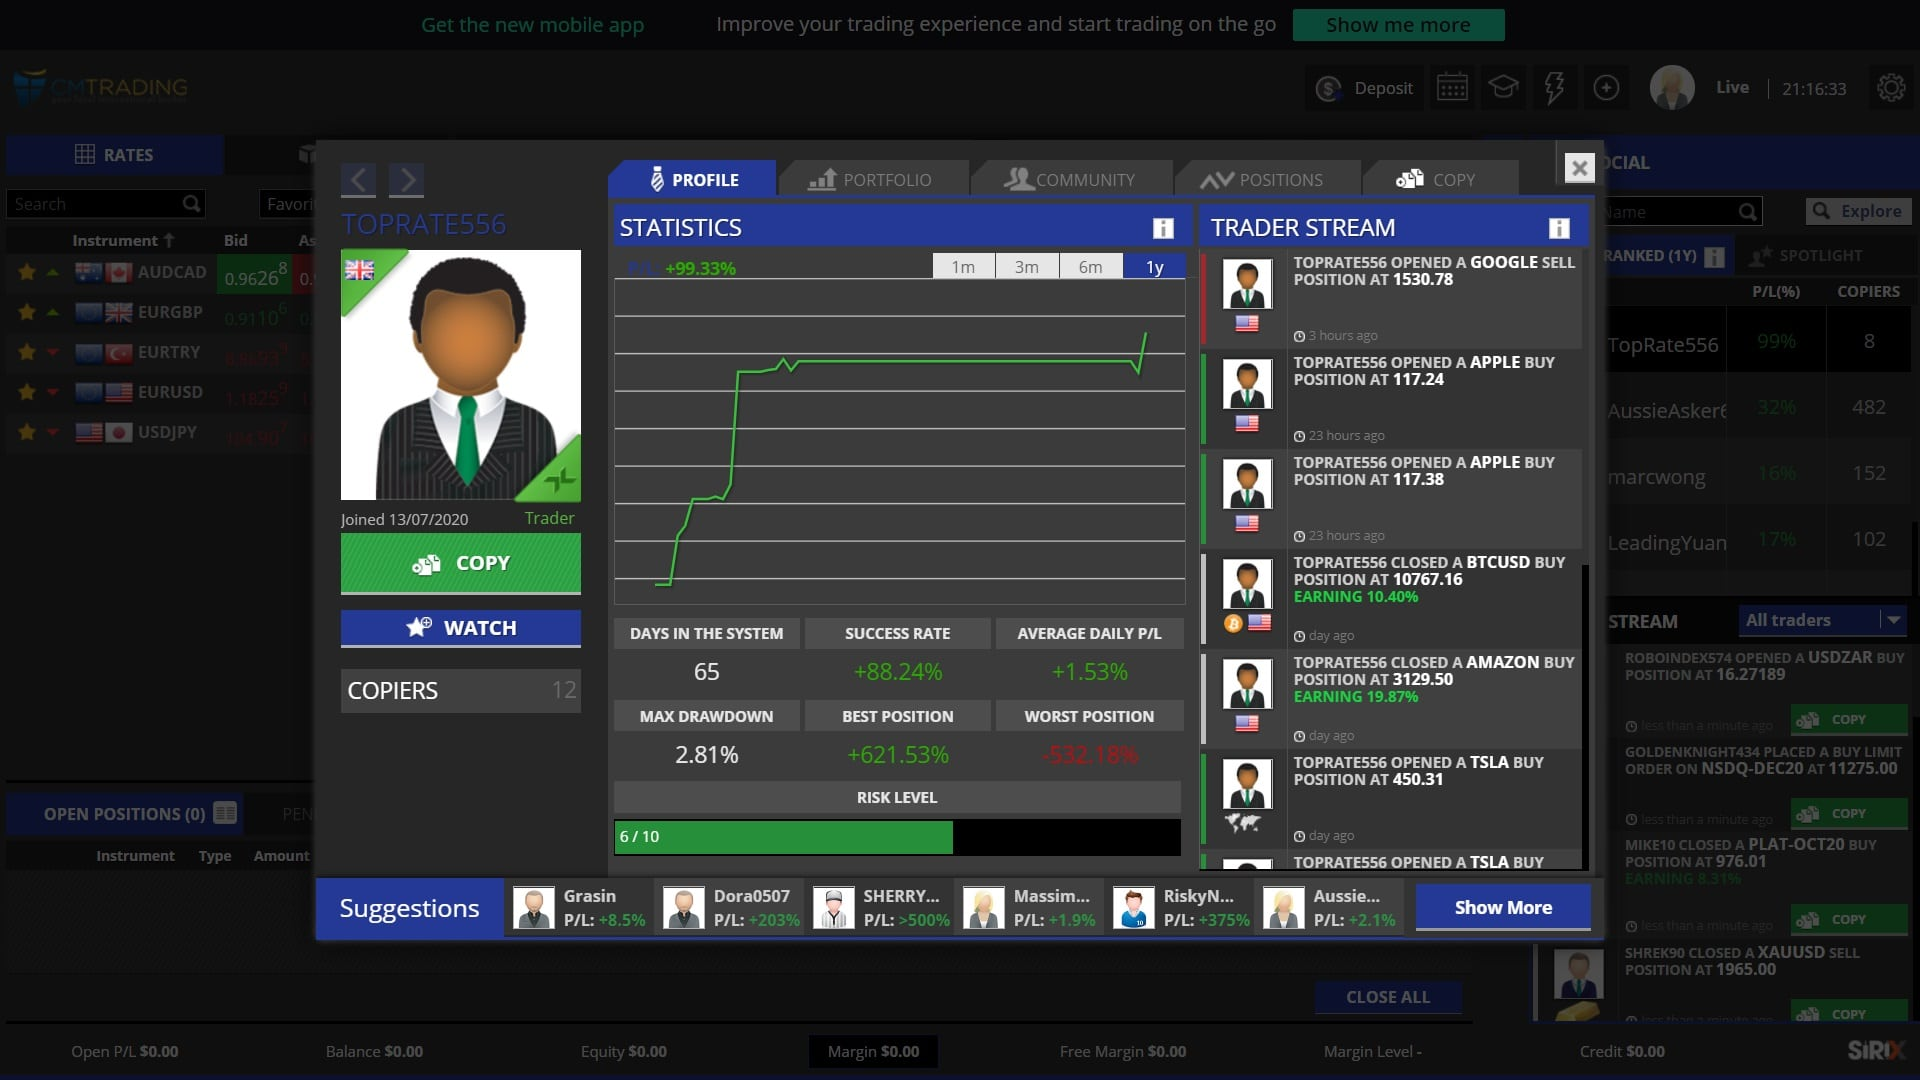 CM Trading CopyKat social trading feature